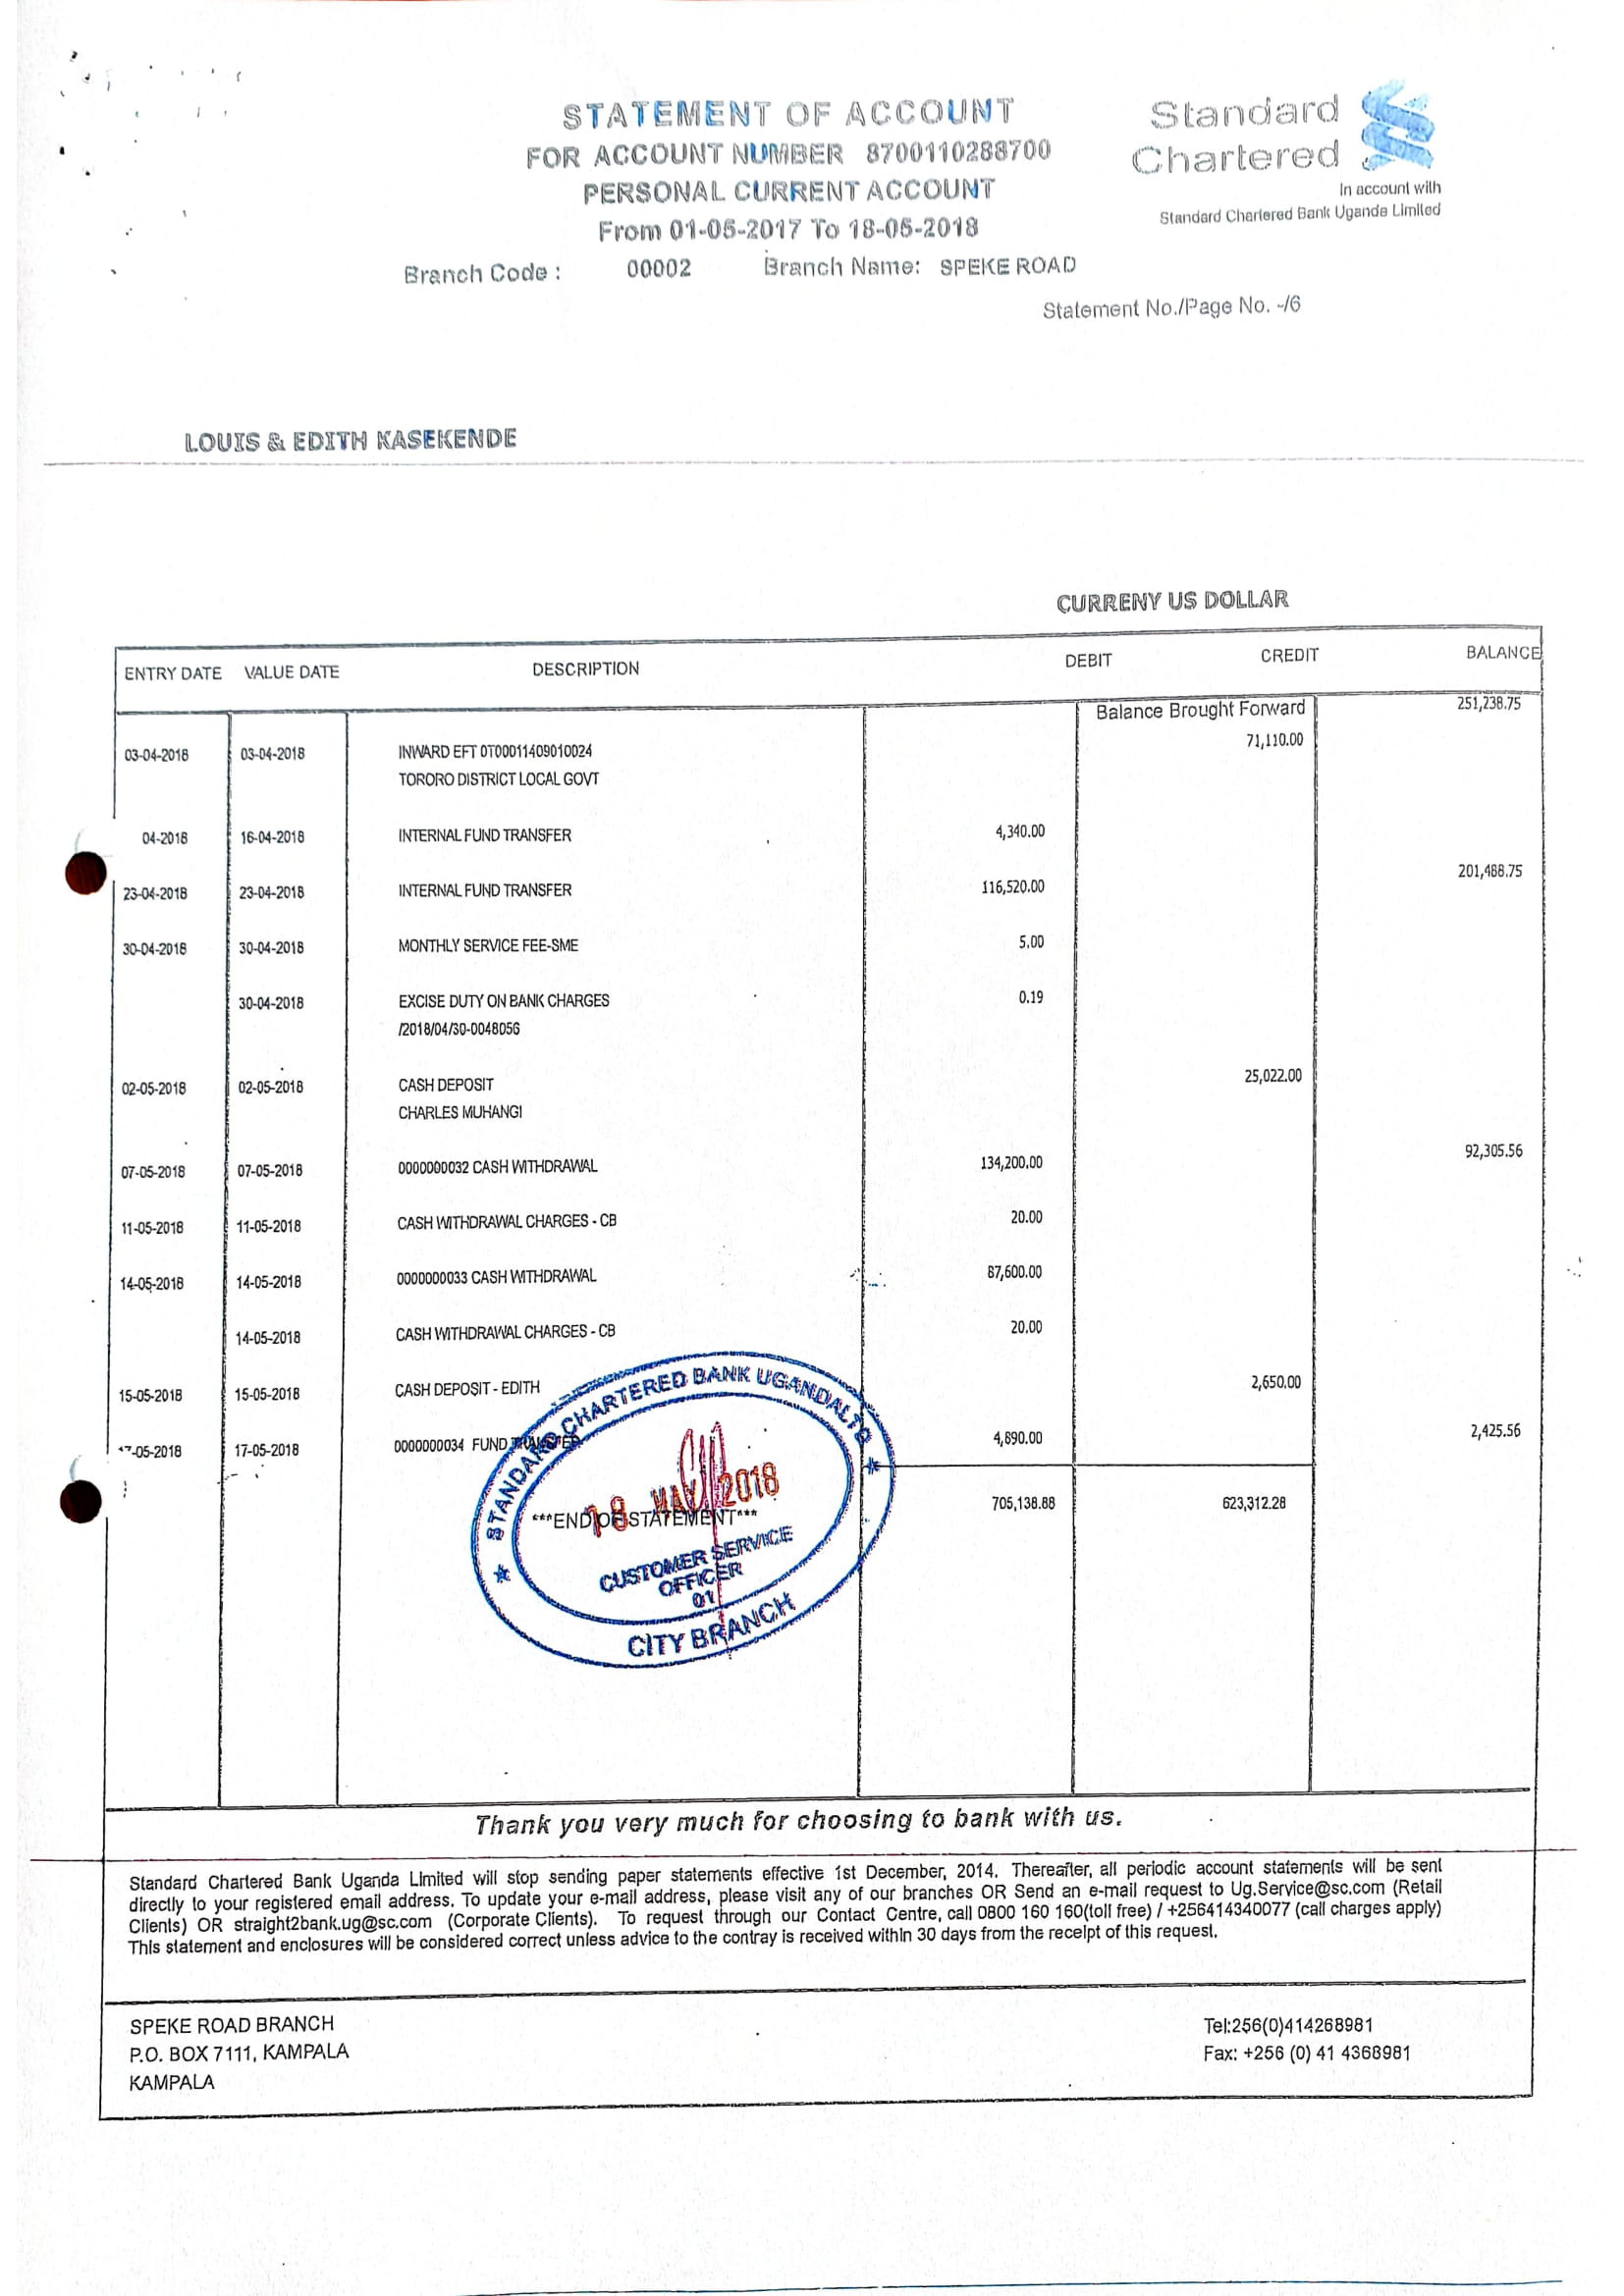 Bank statement of Deputy Governor - Bank of Uganda, Louis A. Kasekende and Wife Edith Kaseskende joint account at Stan Chart bank